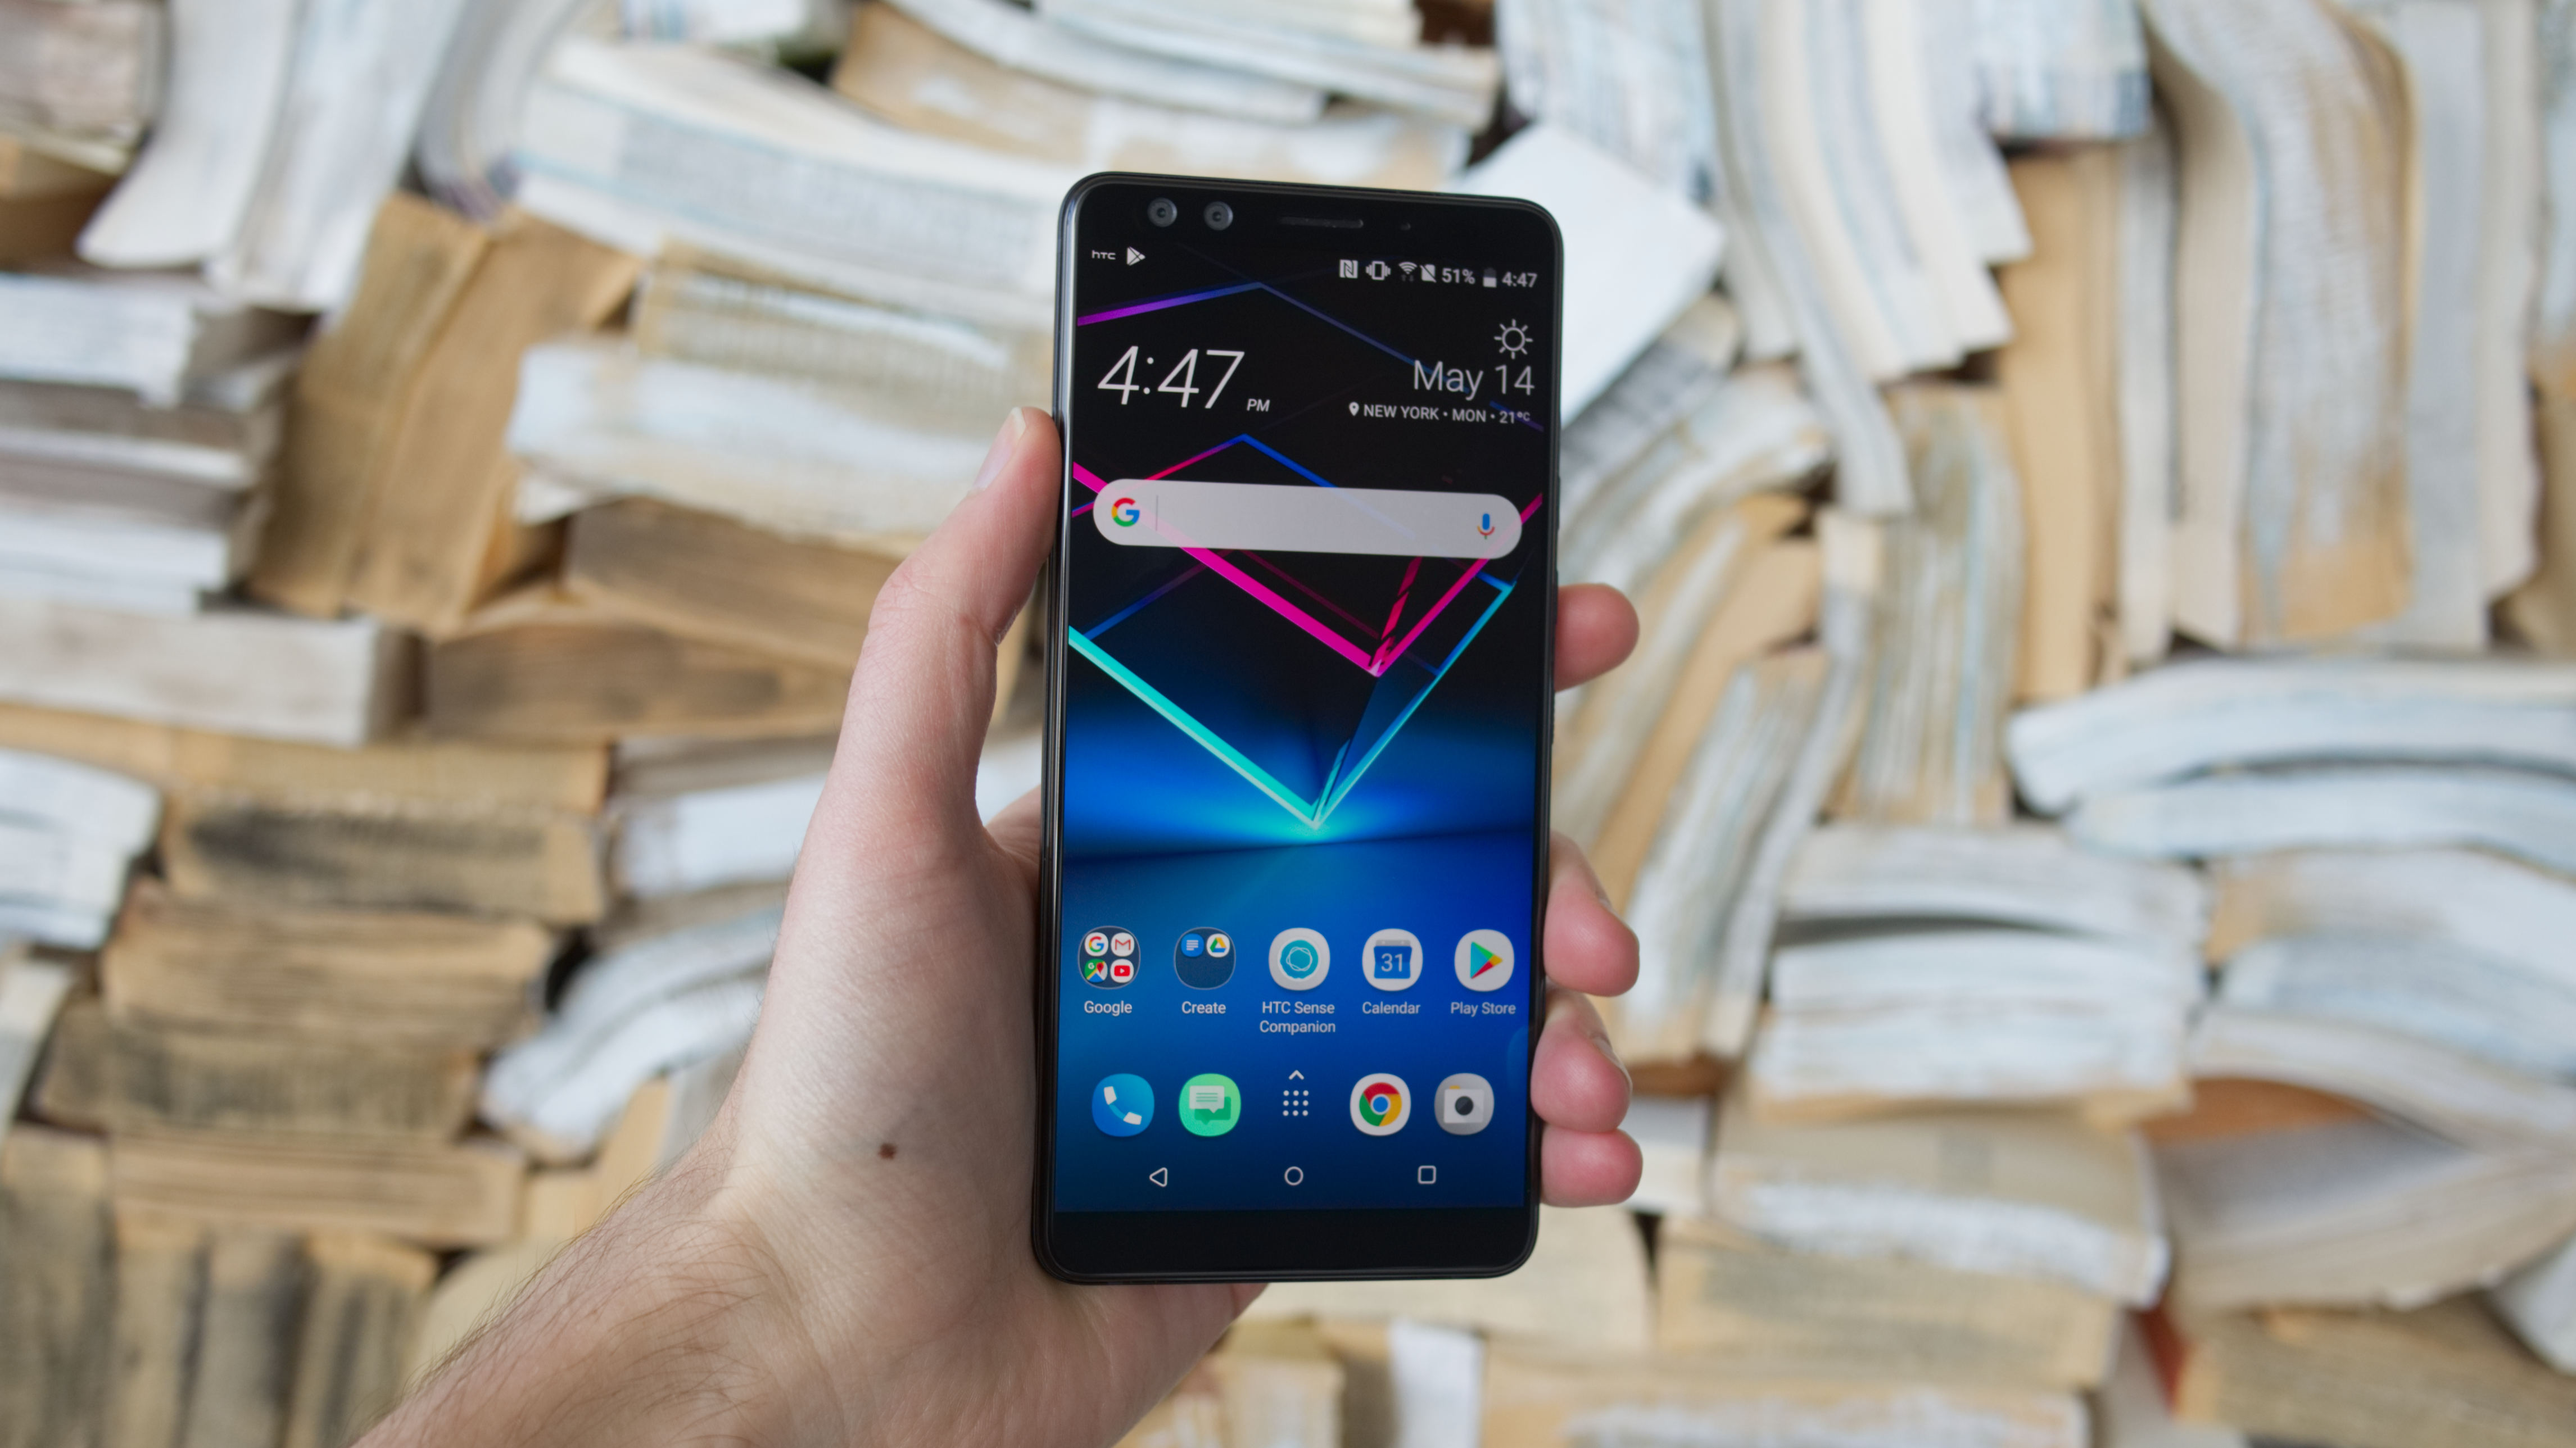 06849fd04 You'll also find a slick all-glass design here. What will decide it for you  is if you want a phone with more screen on the front.